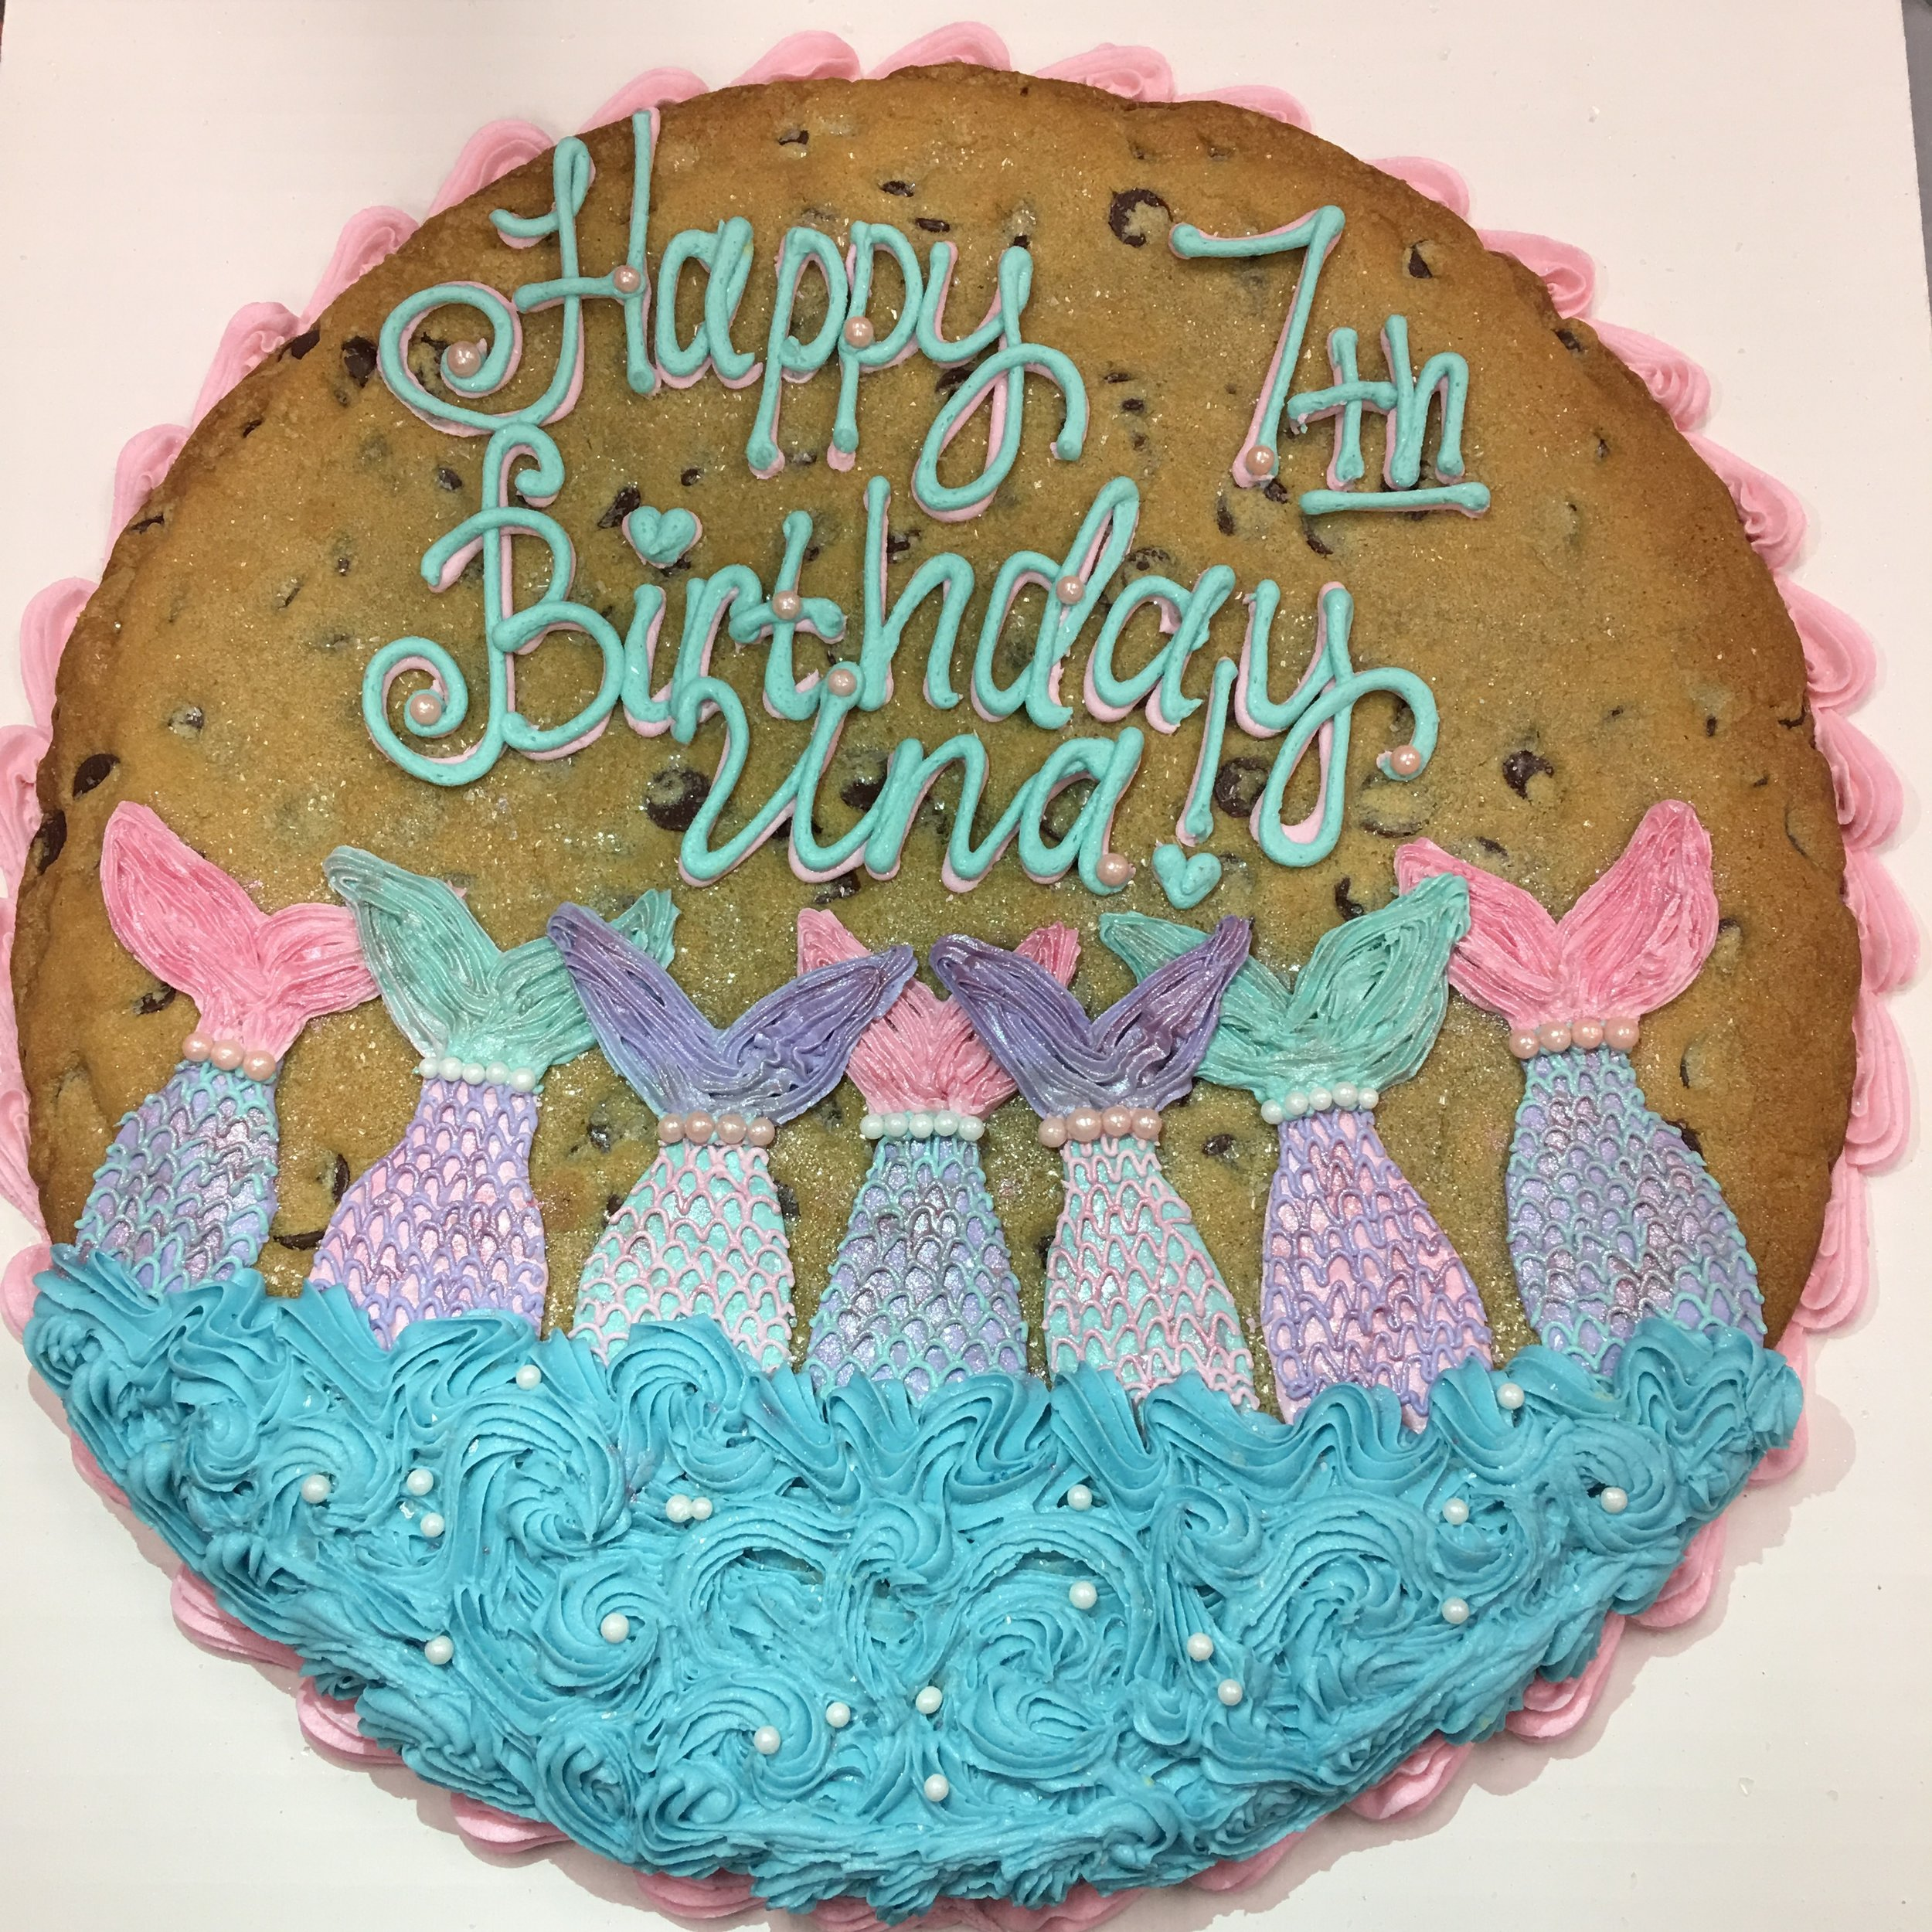 Cookie Cake Mermaid.JPG